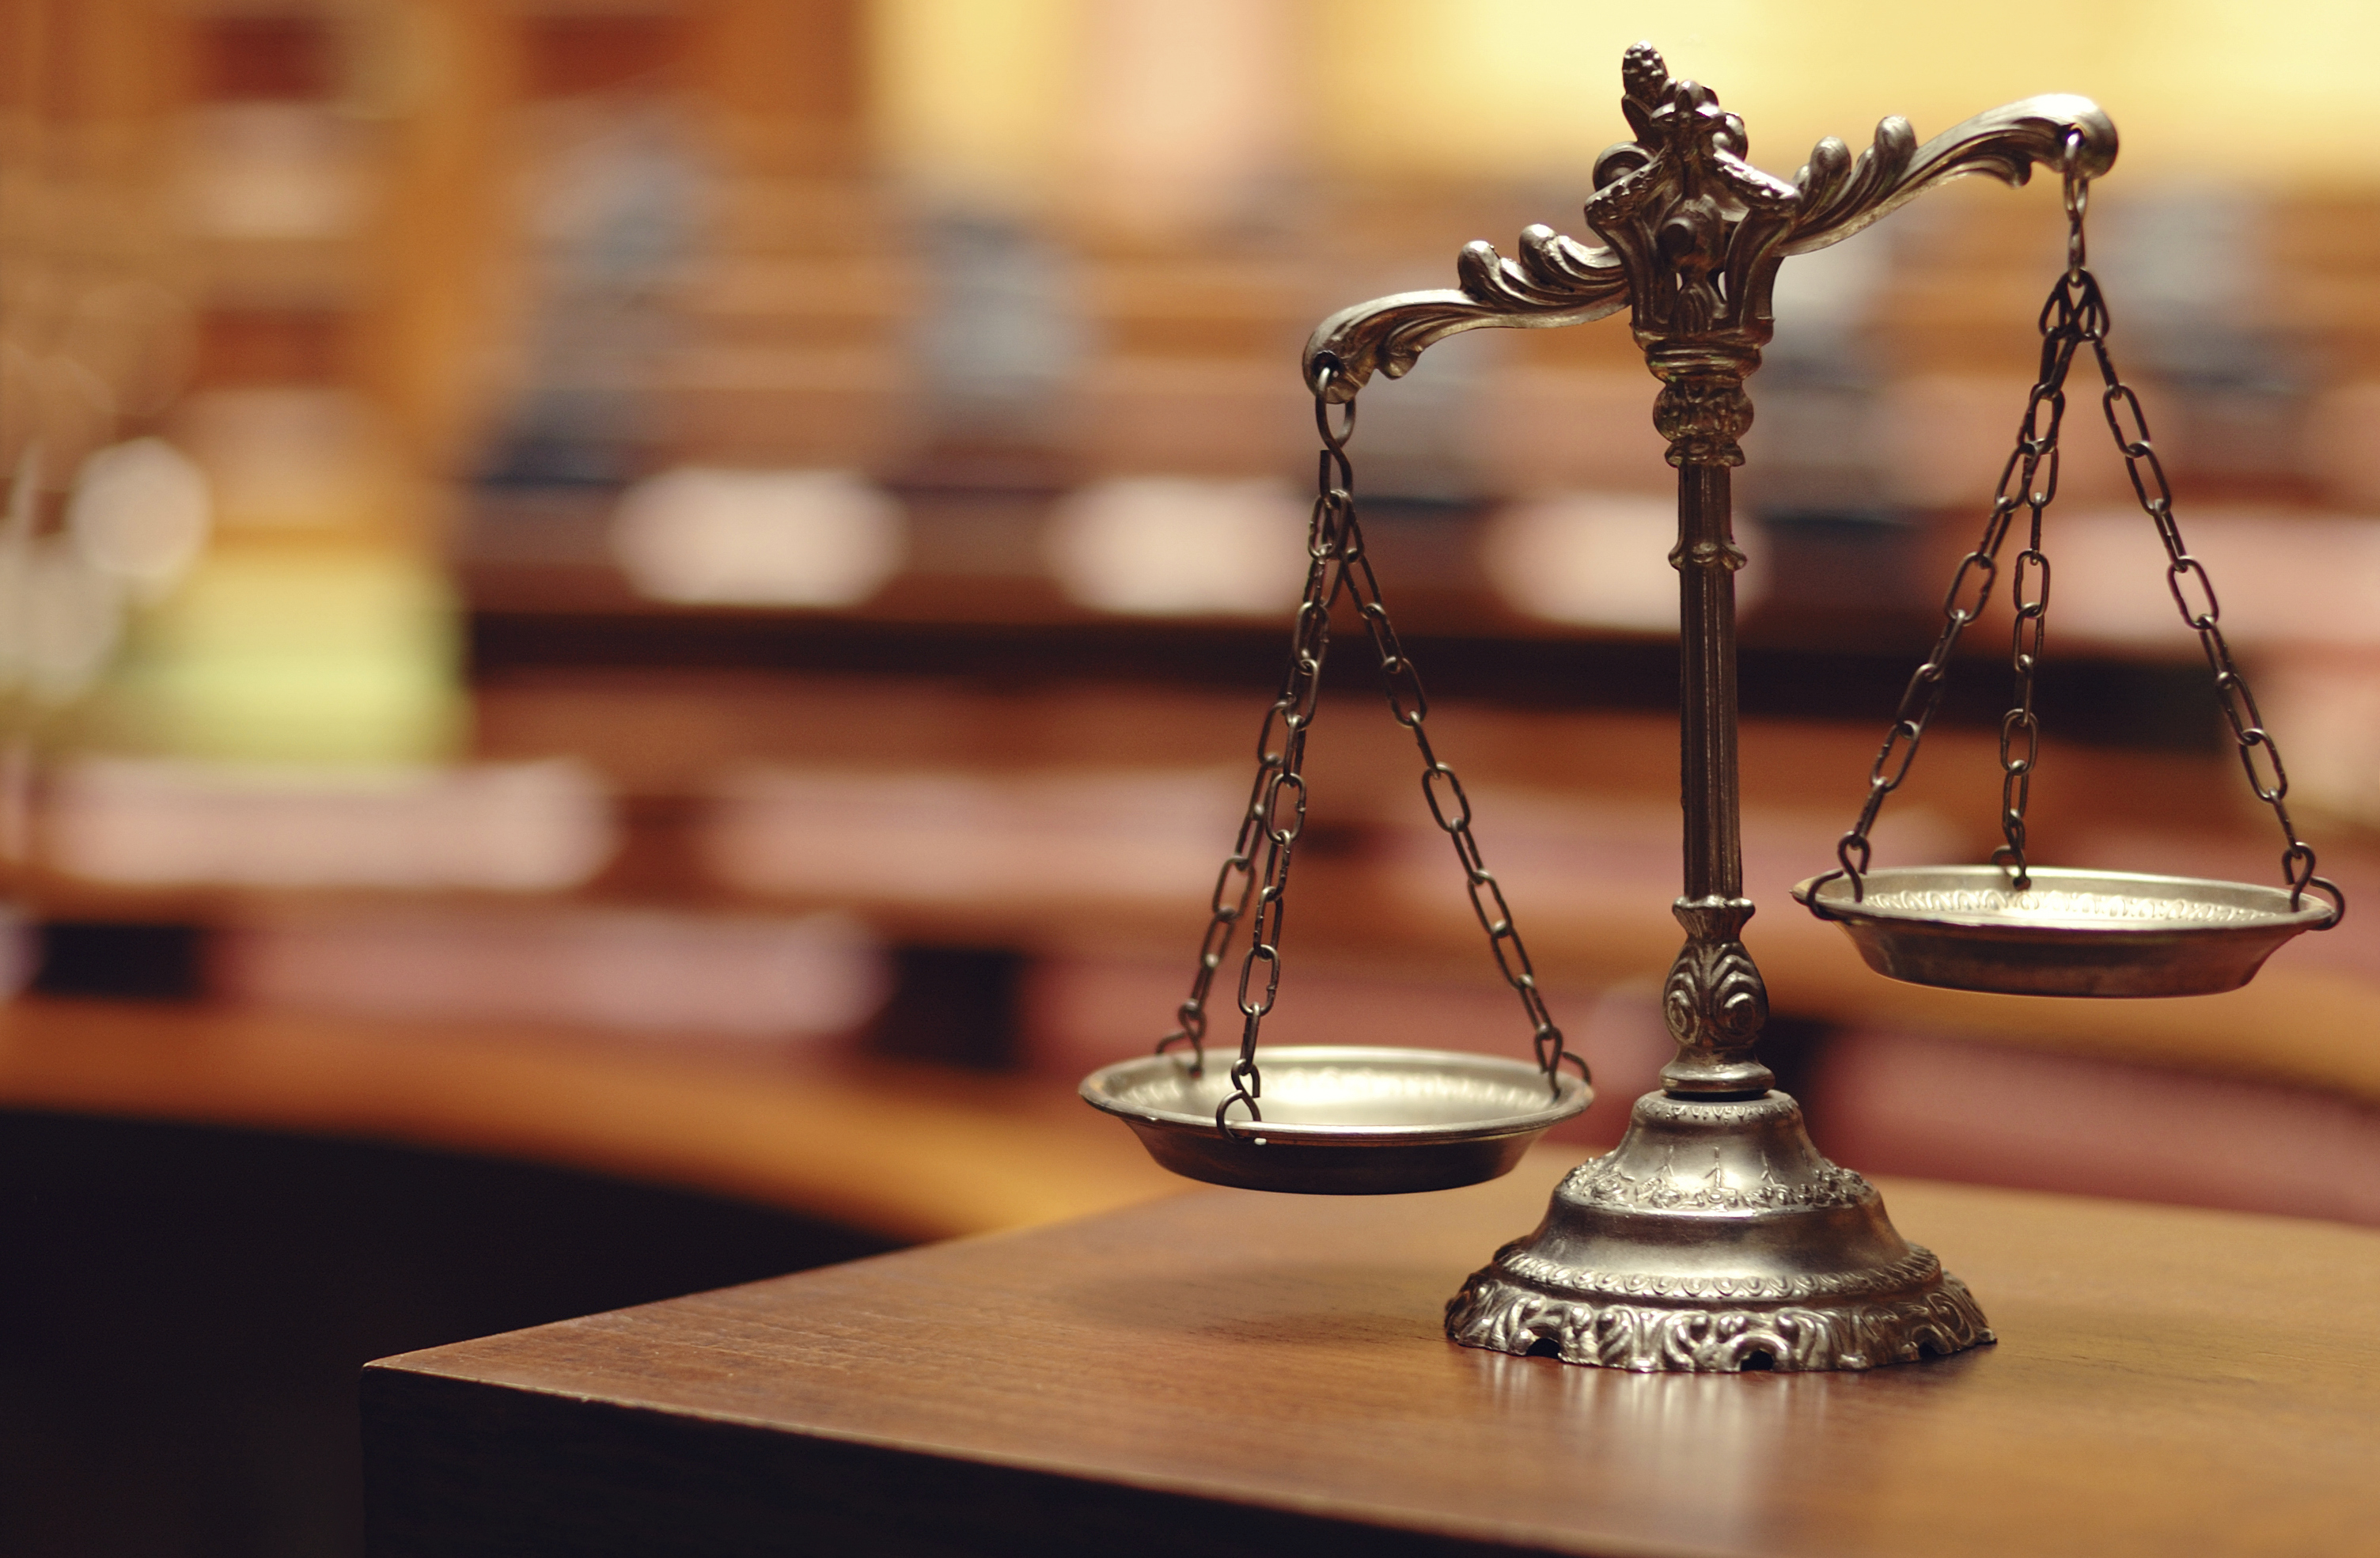 Easy Legal Proceeding With The Help of Family Lawyer